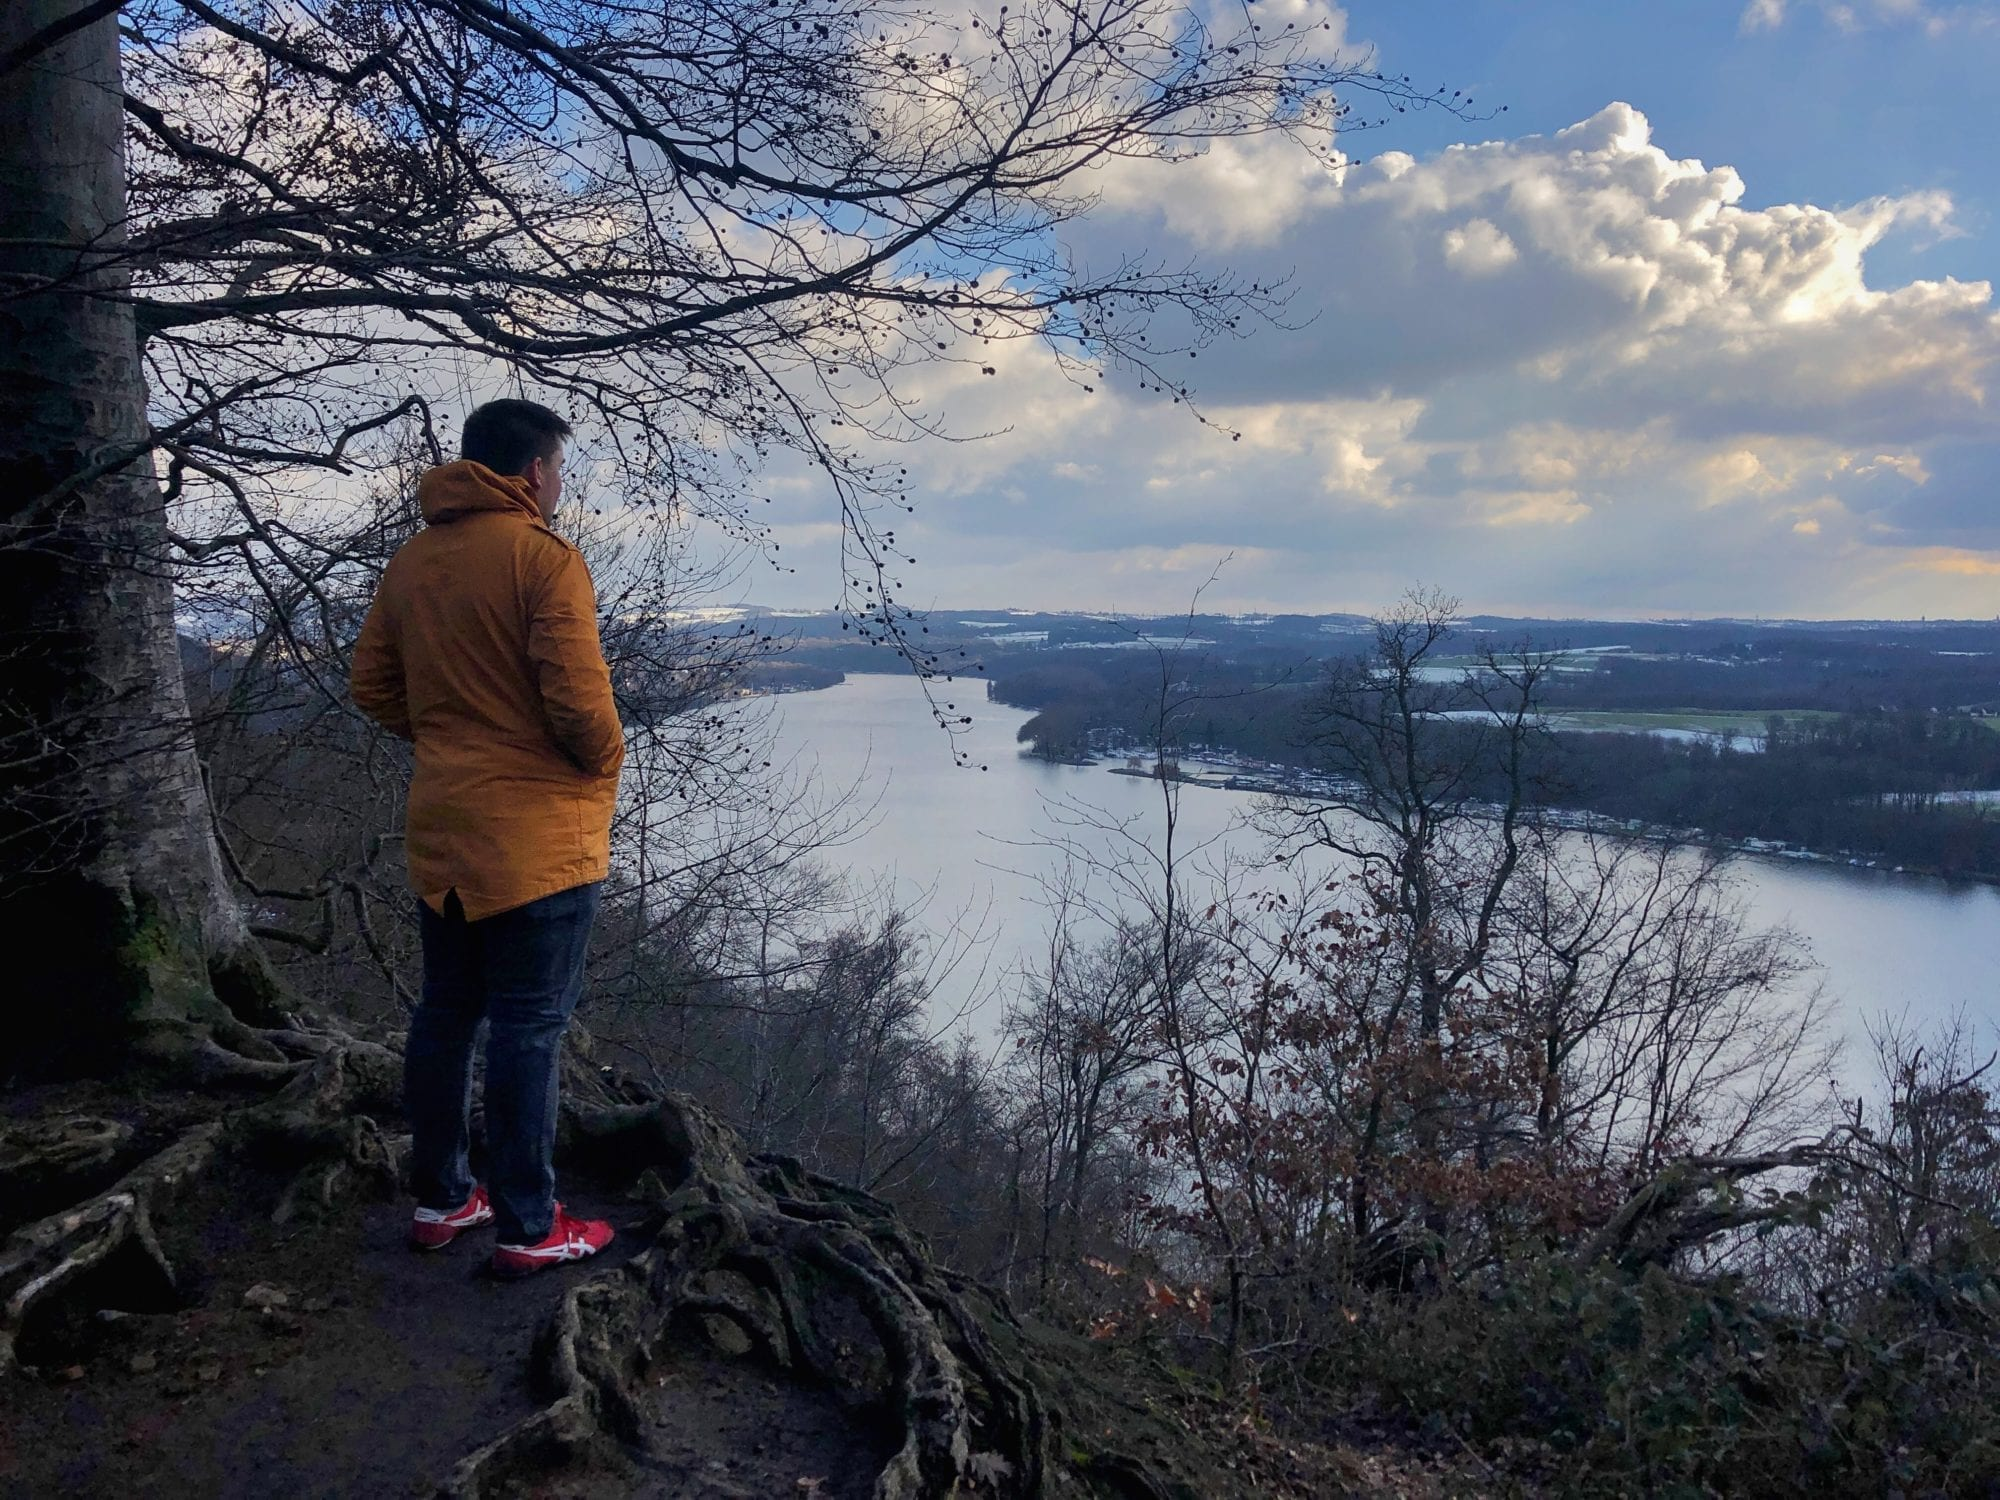 Day Trip: A Beautiful Hike Along the Baldeneysee